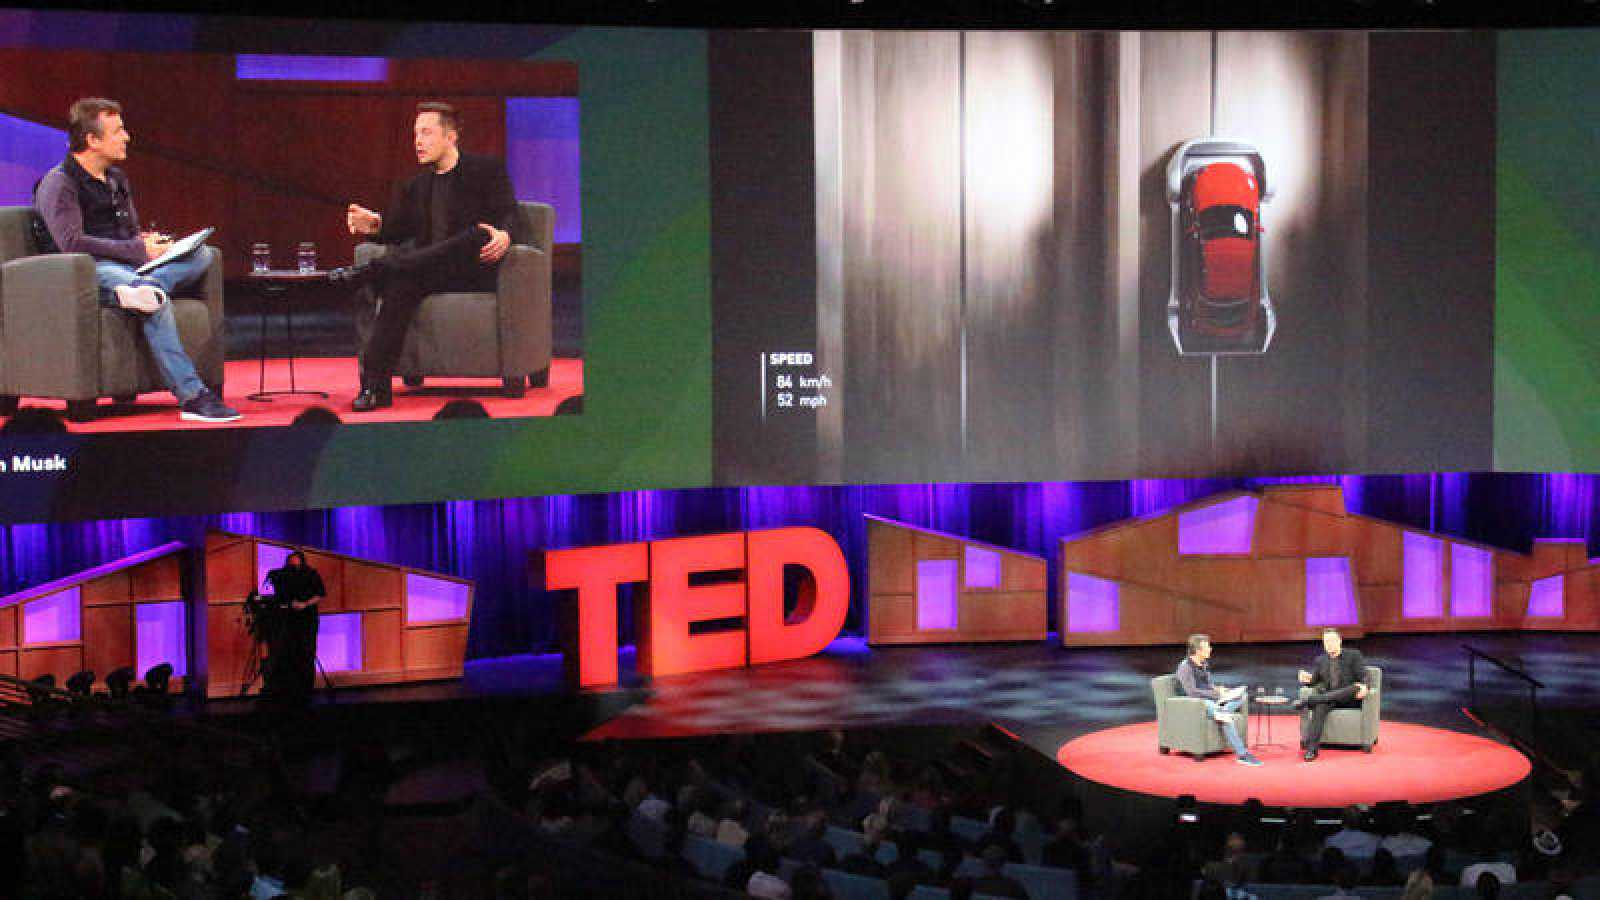 TED Conference